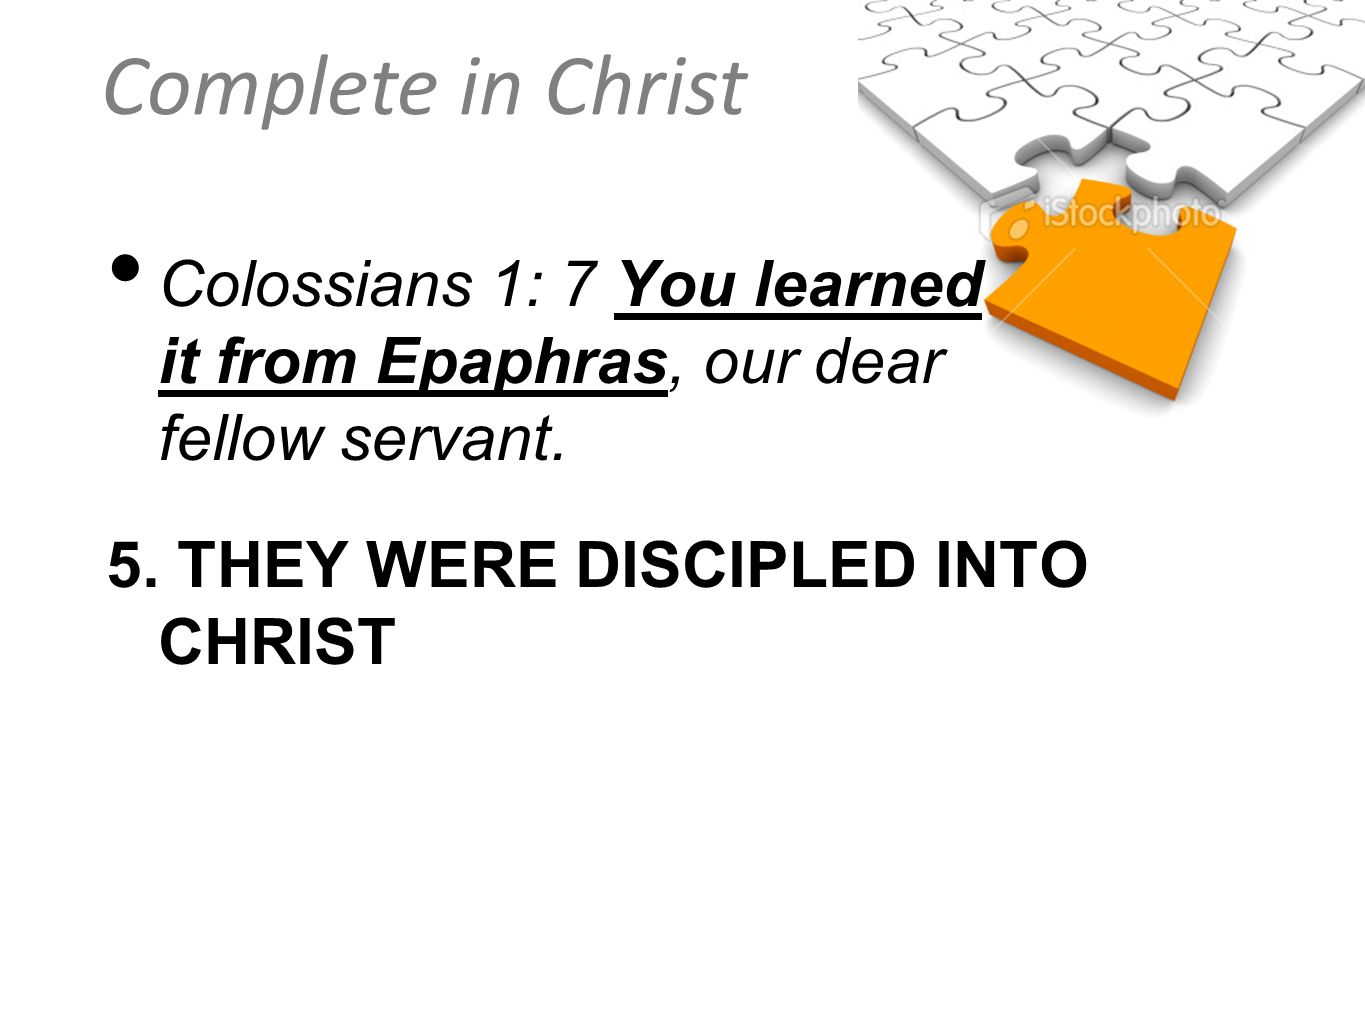 Colossians 1: 7 You learned it from Epaphras, our dear fellow servant.